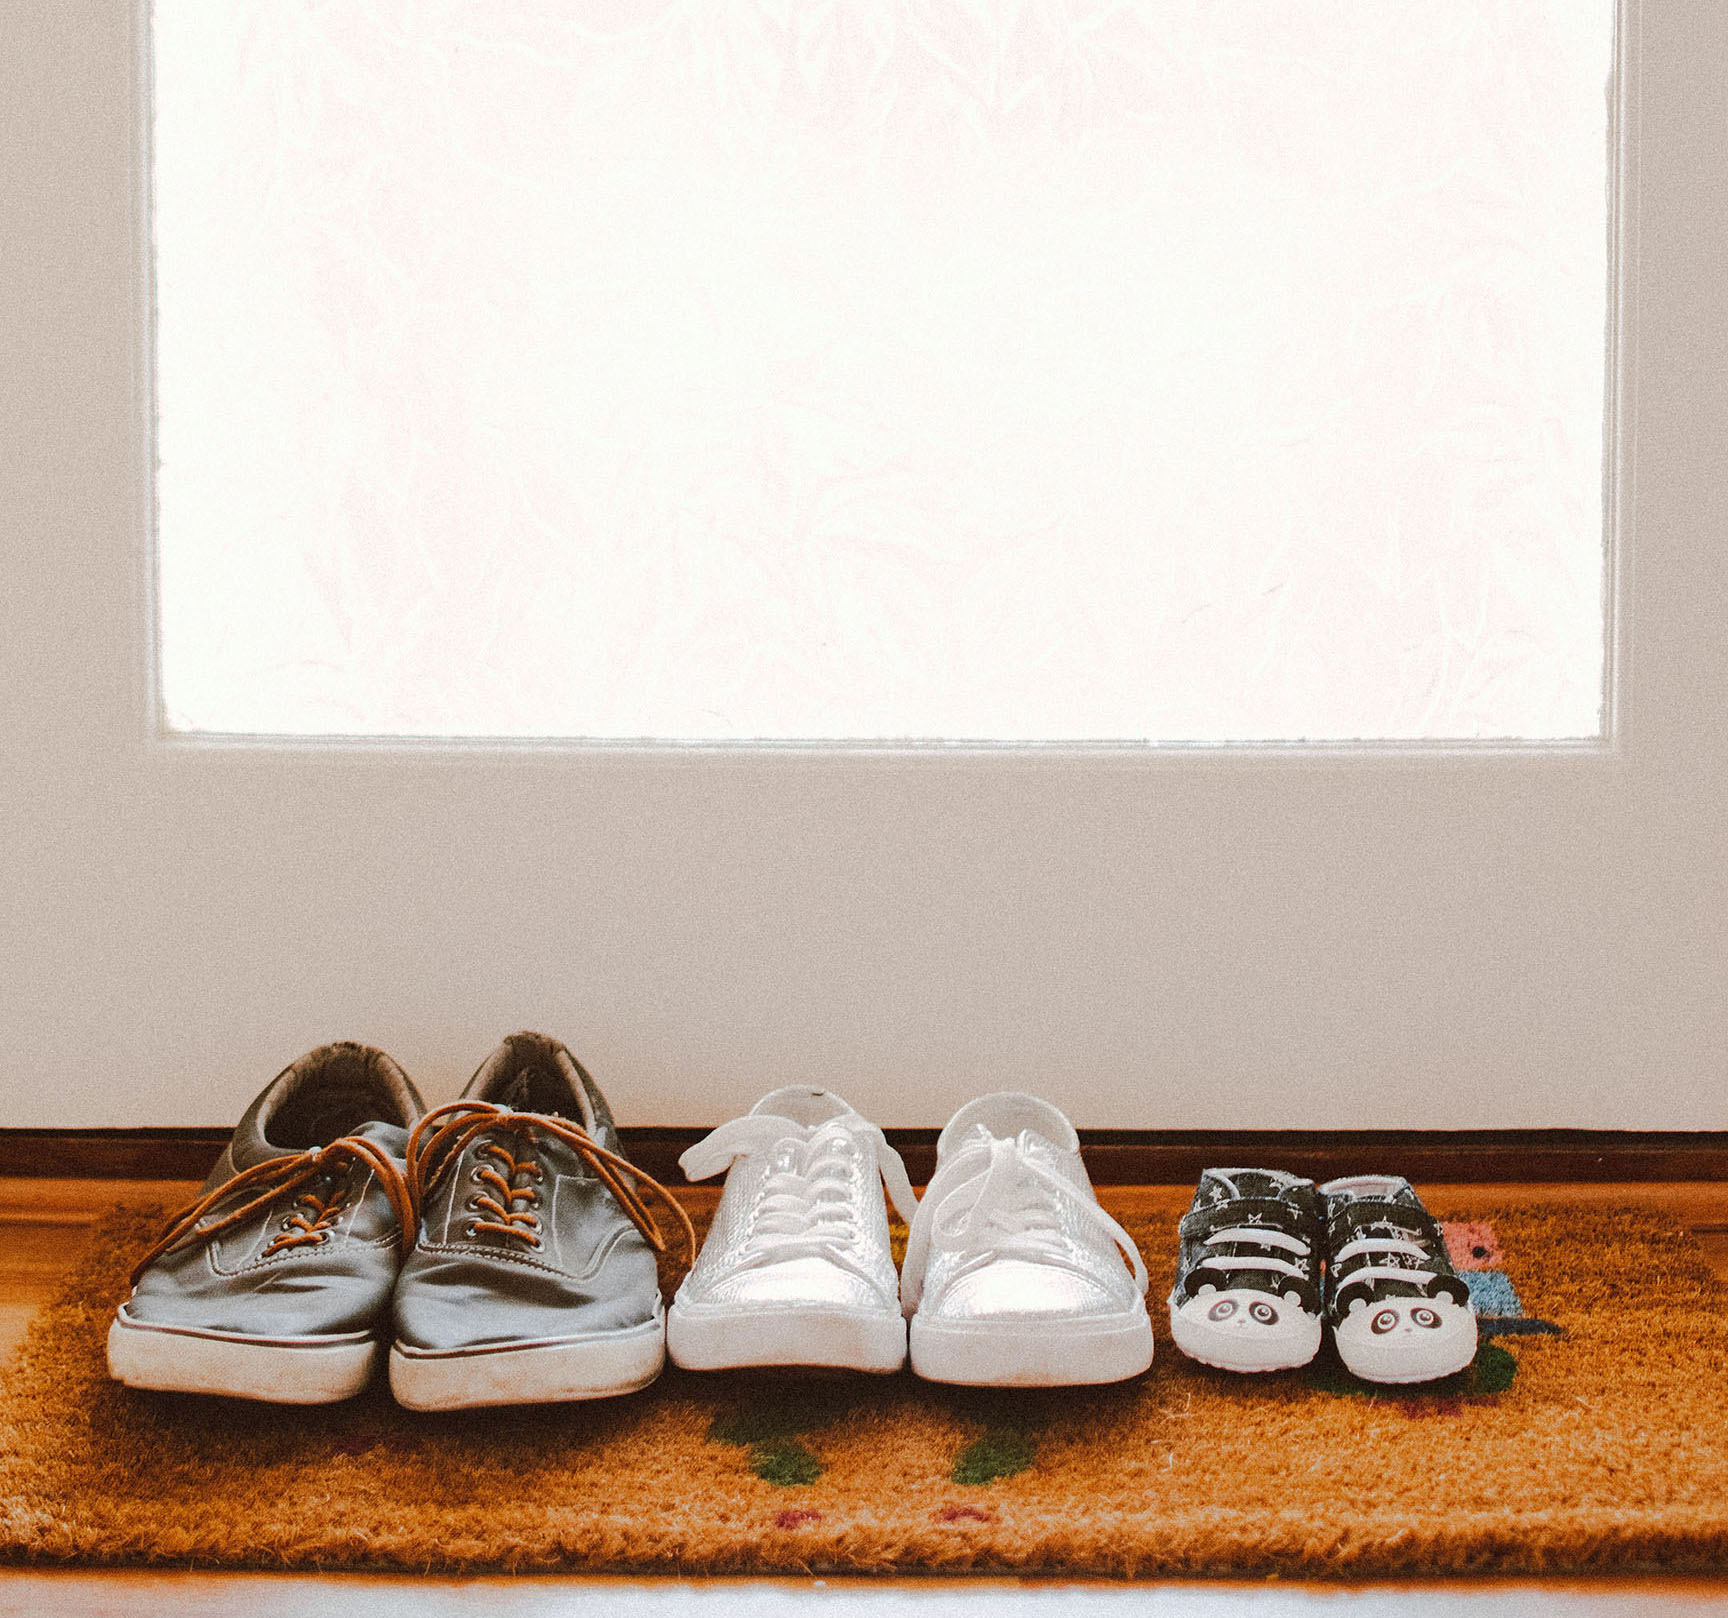 Family Shoes Lined Up